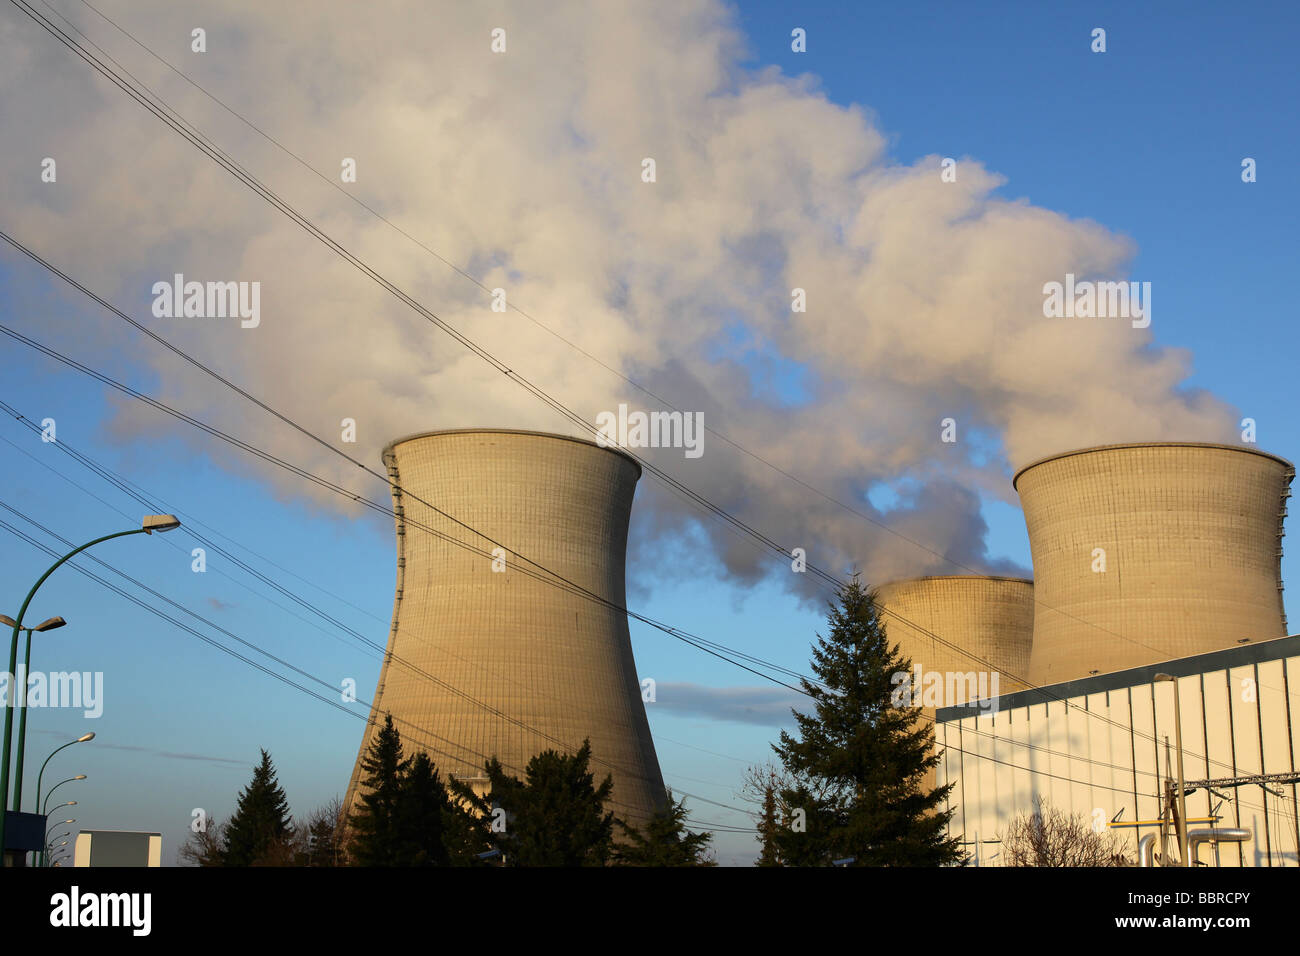 COOLING CHIMNEYS (STEAM) AT THE EDF NUCLEAR POWER PLANT, REP TYPE PRESSURIZED WATER REACTOR, BUGEY, AIN (01), FRANCE - Stock Image